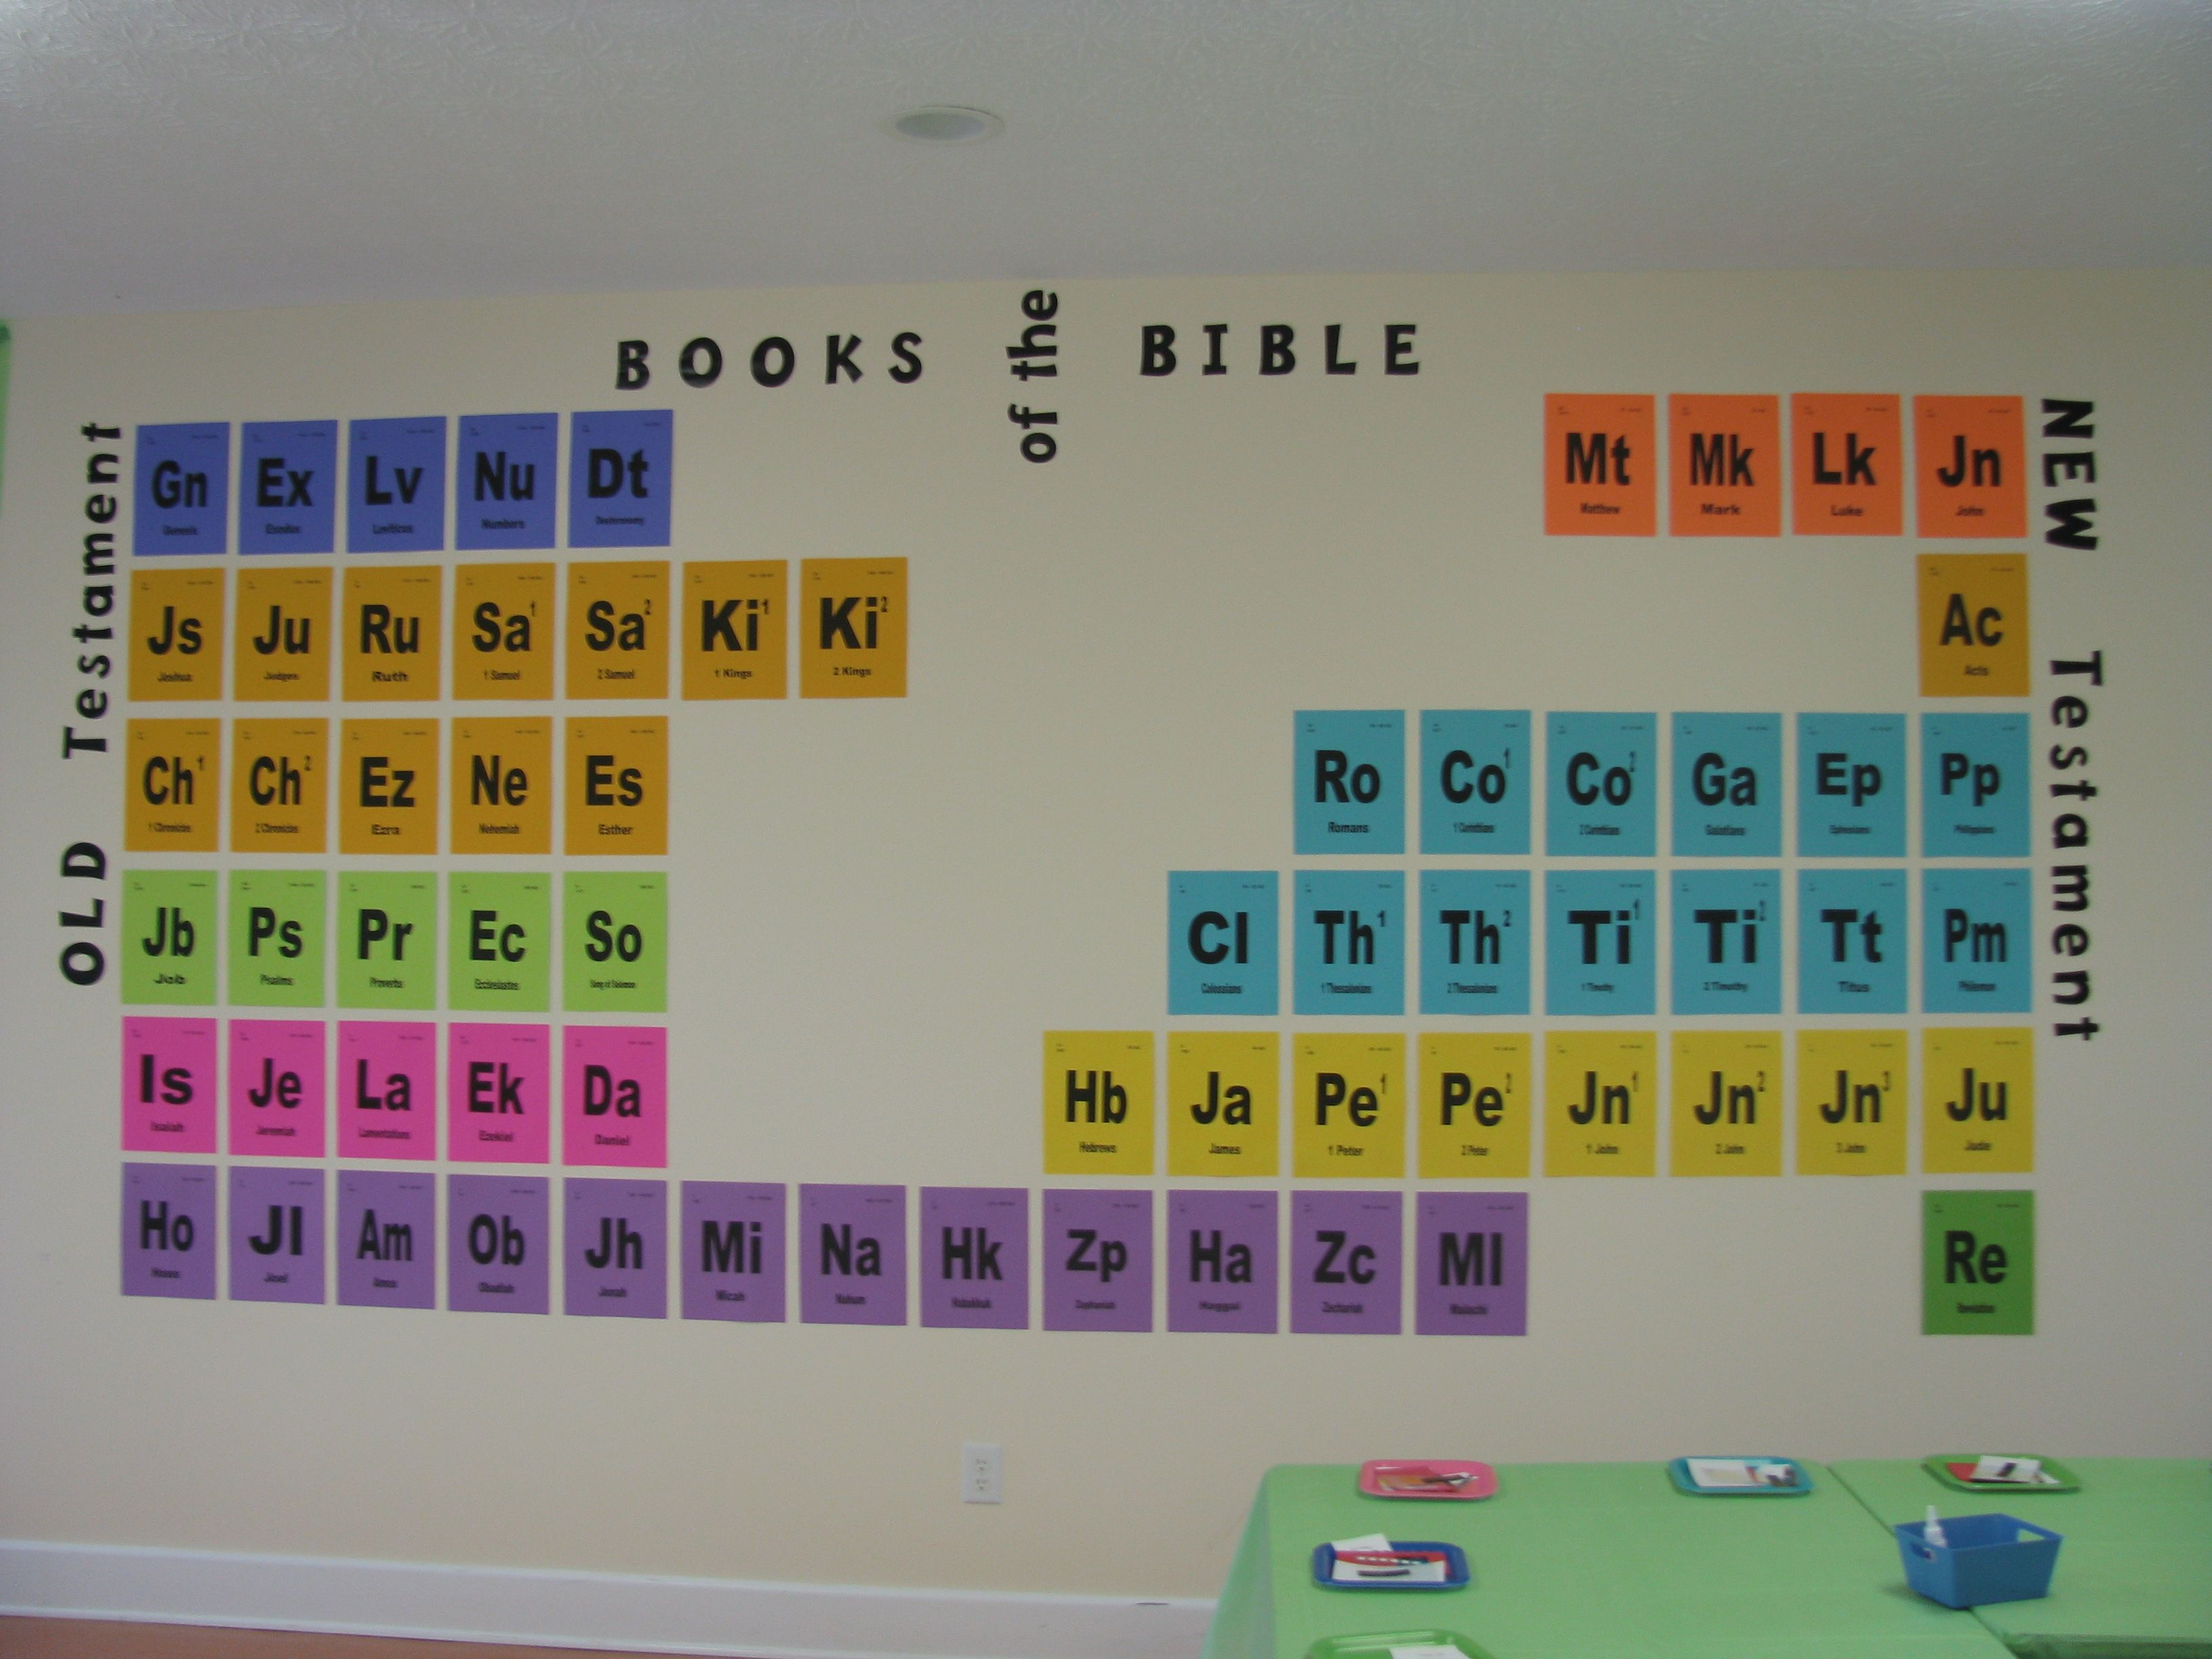 Periodic table style books of the bible i did this for the periodic table style books of the bible i did this for the fellowship hall crafts area urtaz Choice Image